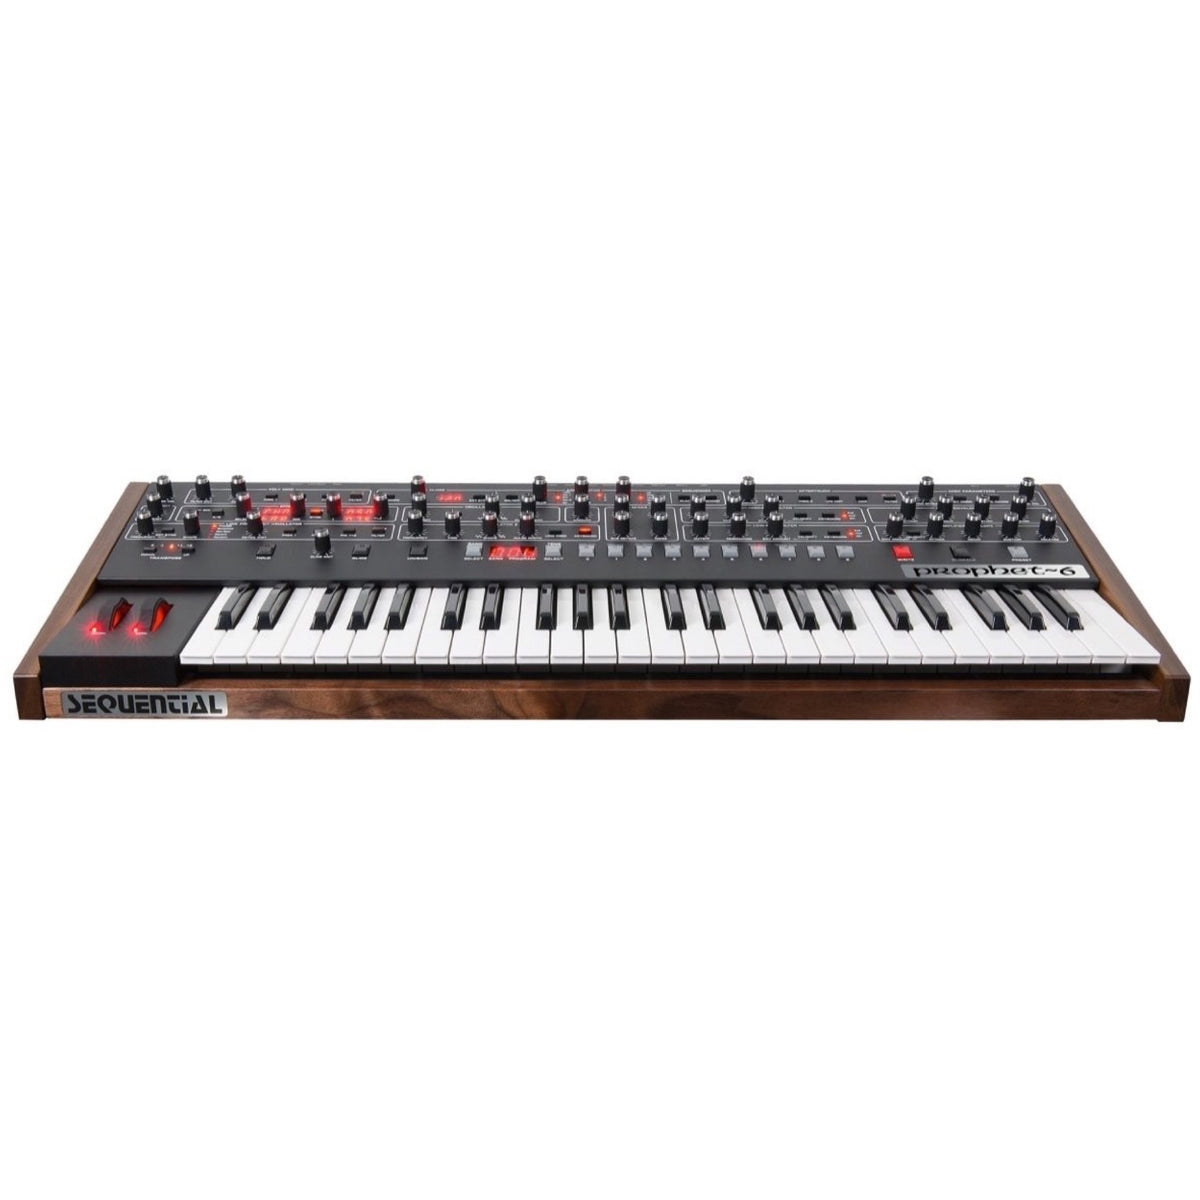 Sequential Prophet 6 Analog Synthesizer Keyboard, 49-Key